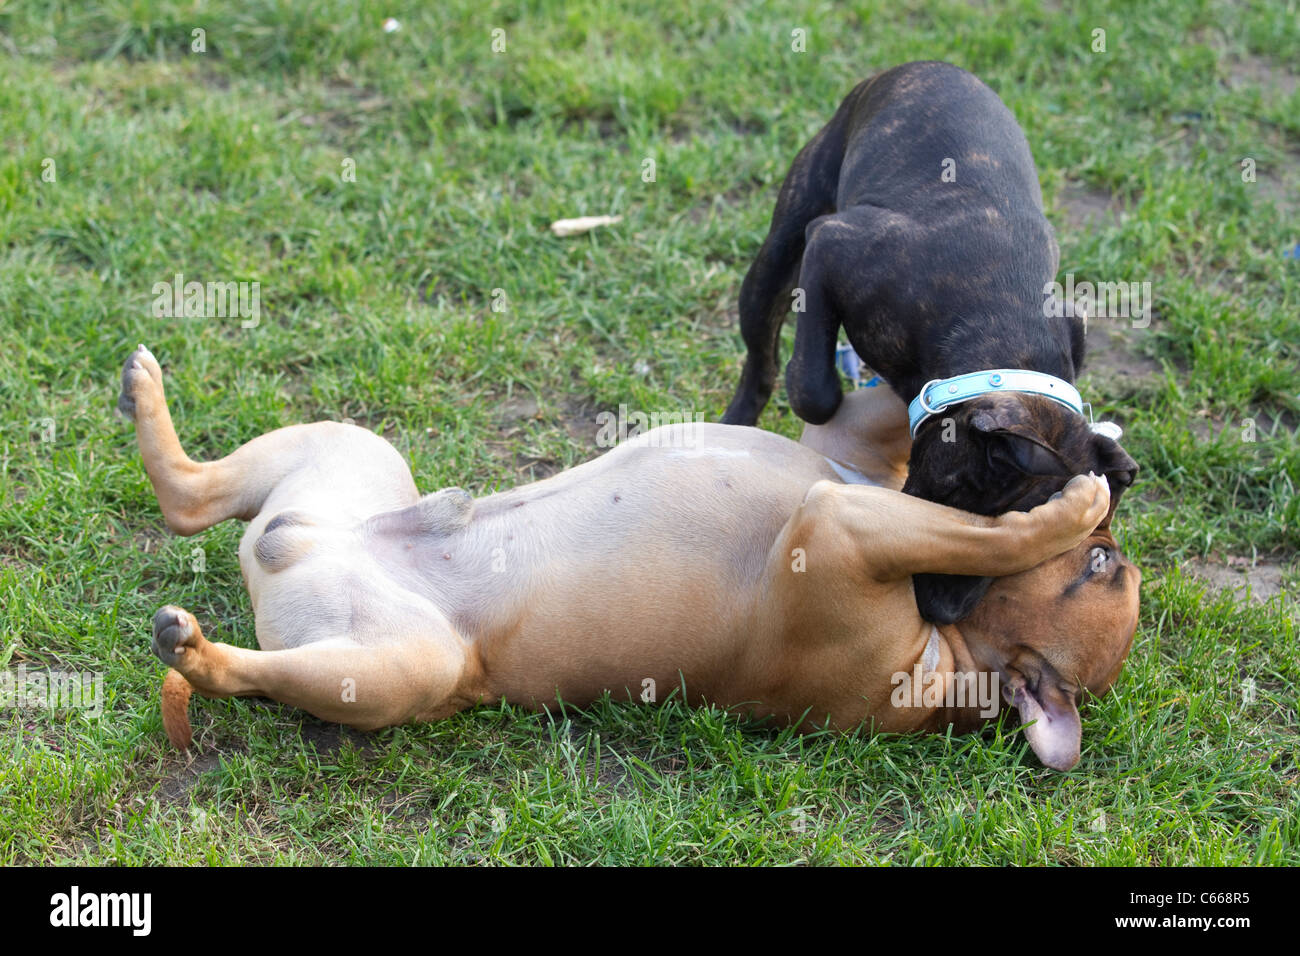 Staffordshire bull terriers fighting on a working class estate in Catford, South East London. Photo:Jeff Gilbert - Stock Image